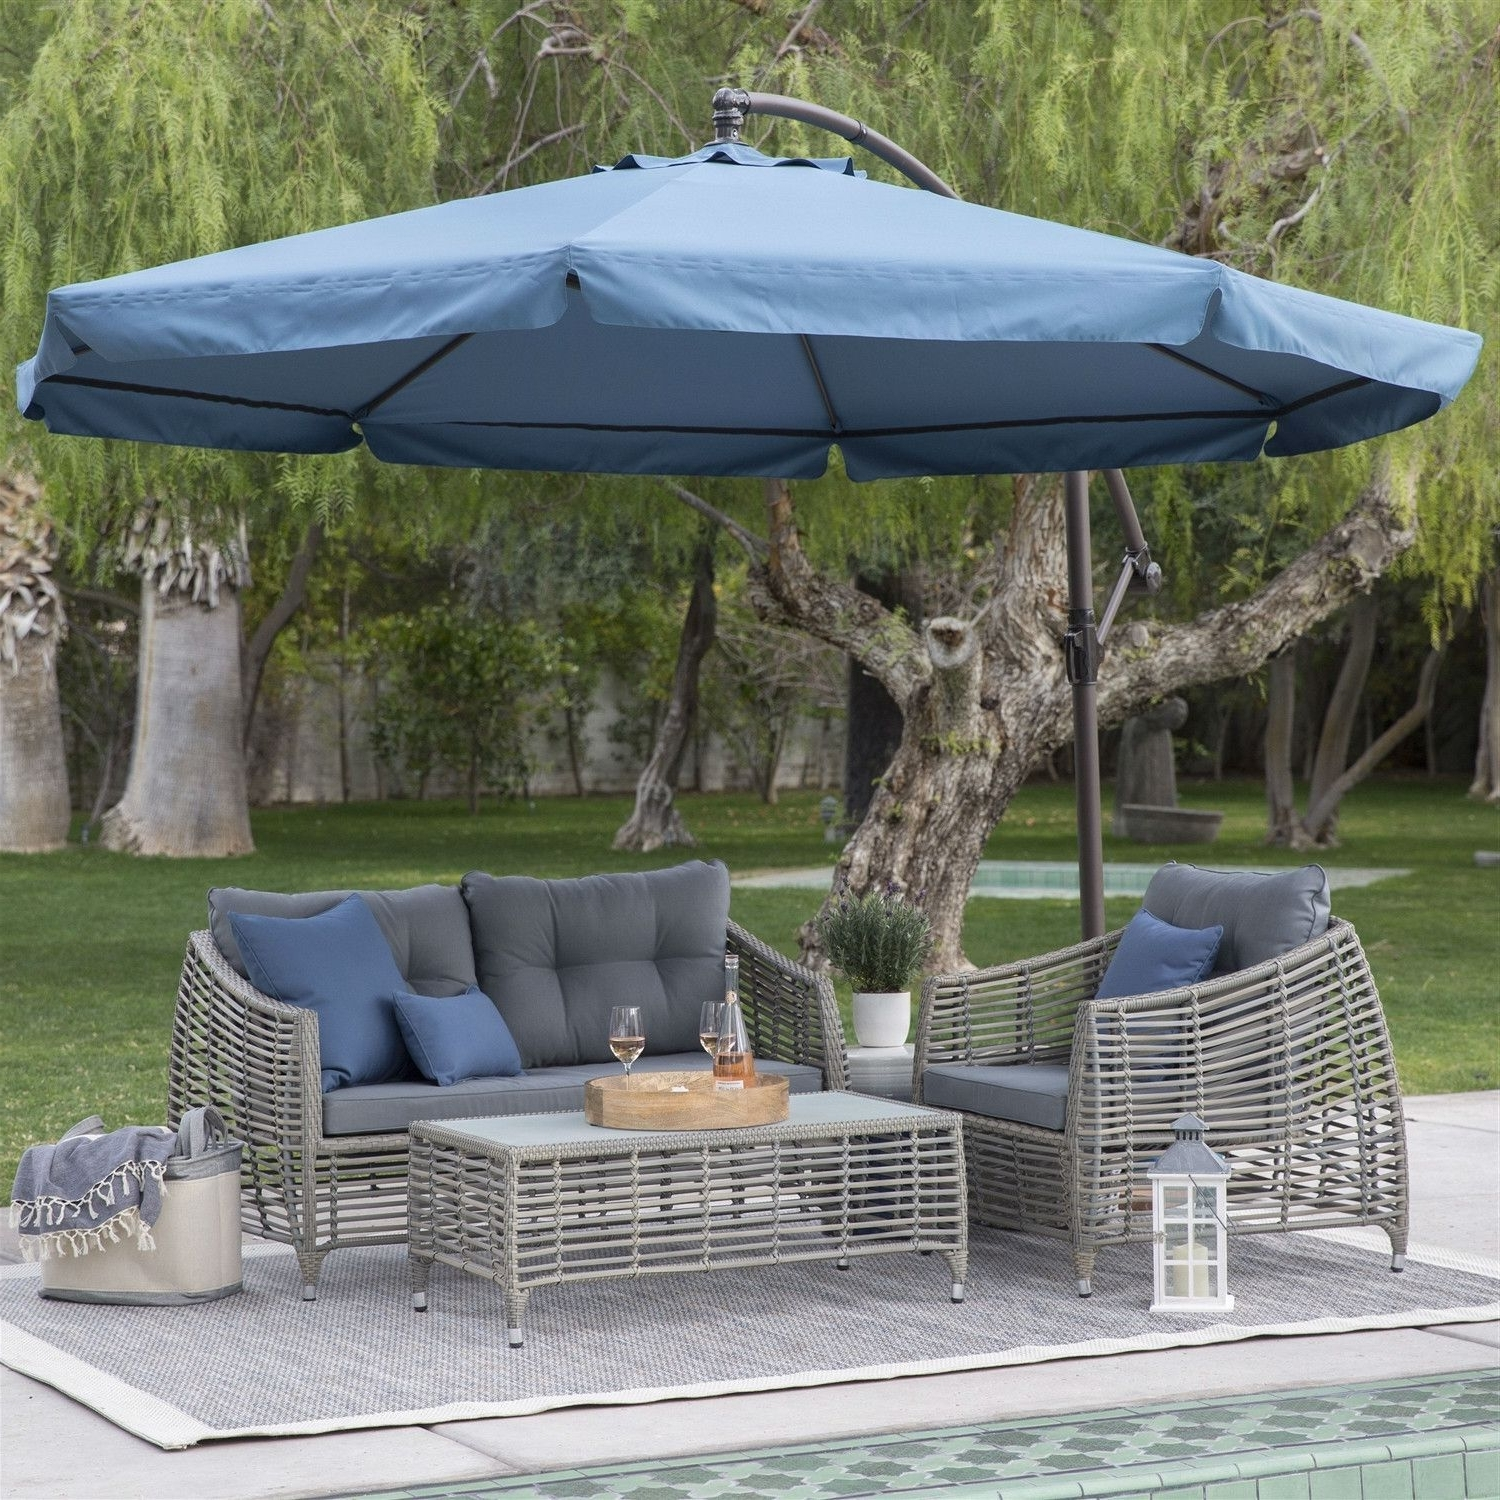 Famous Navy Blue 11 Ft Offset Steel Patio Umbrella Gazebo Canopy With For Patio Umbrellas With Netting (View 4 of 20)